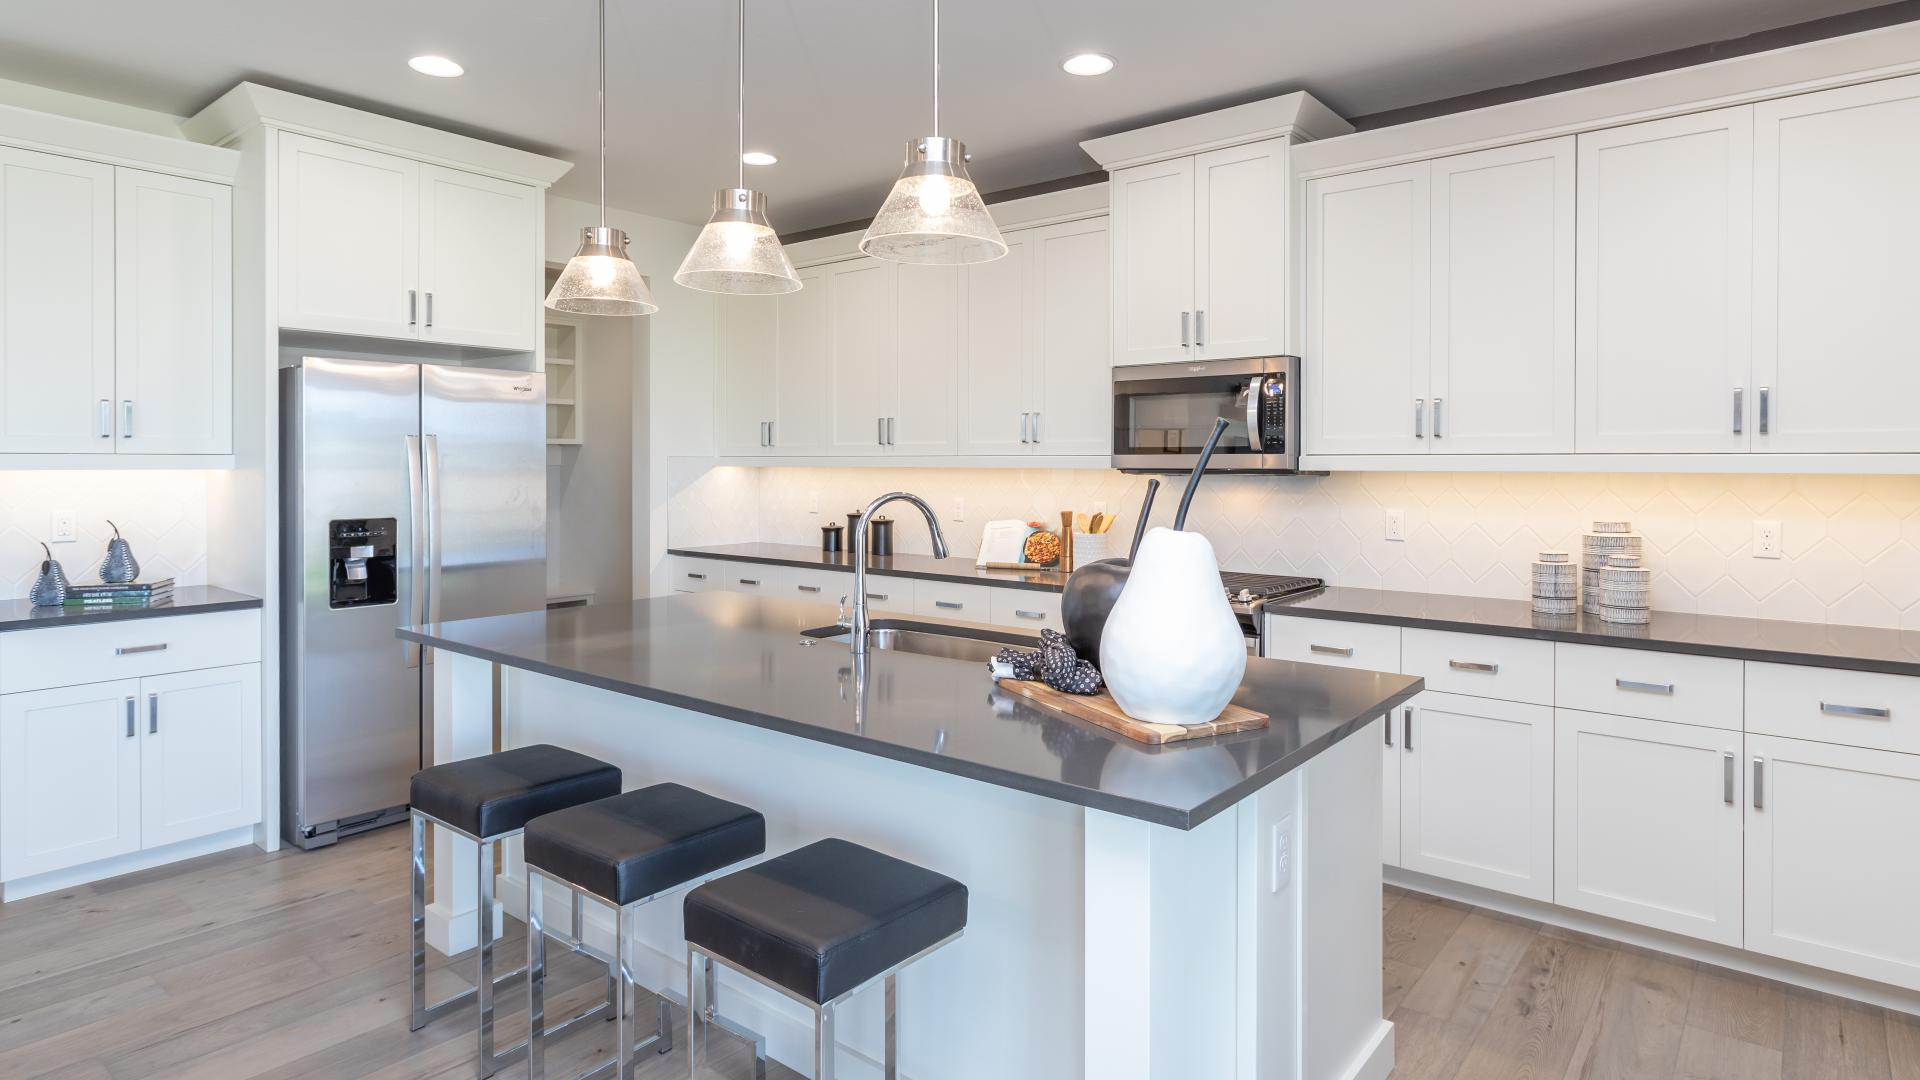 Spacious and modern kitchens